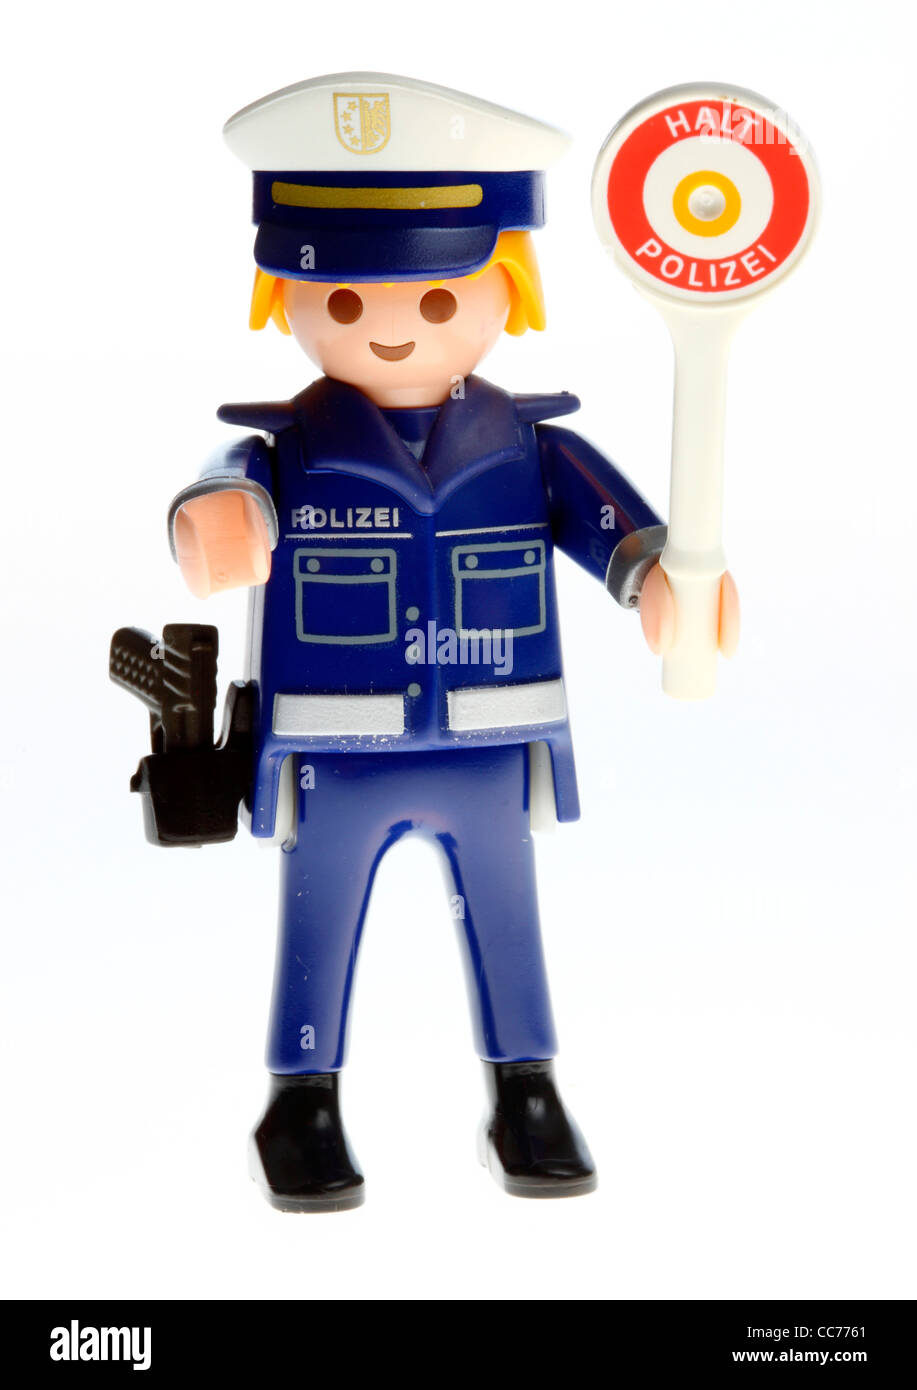 Stop police. Playmobil figure, toy. Police control, speed control, symbol picture. Stock Photo